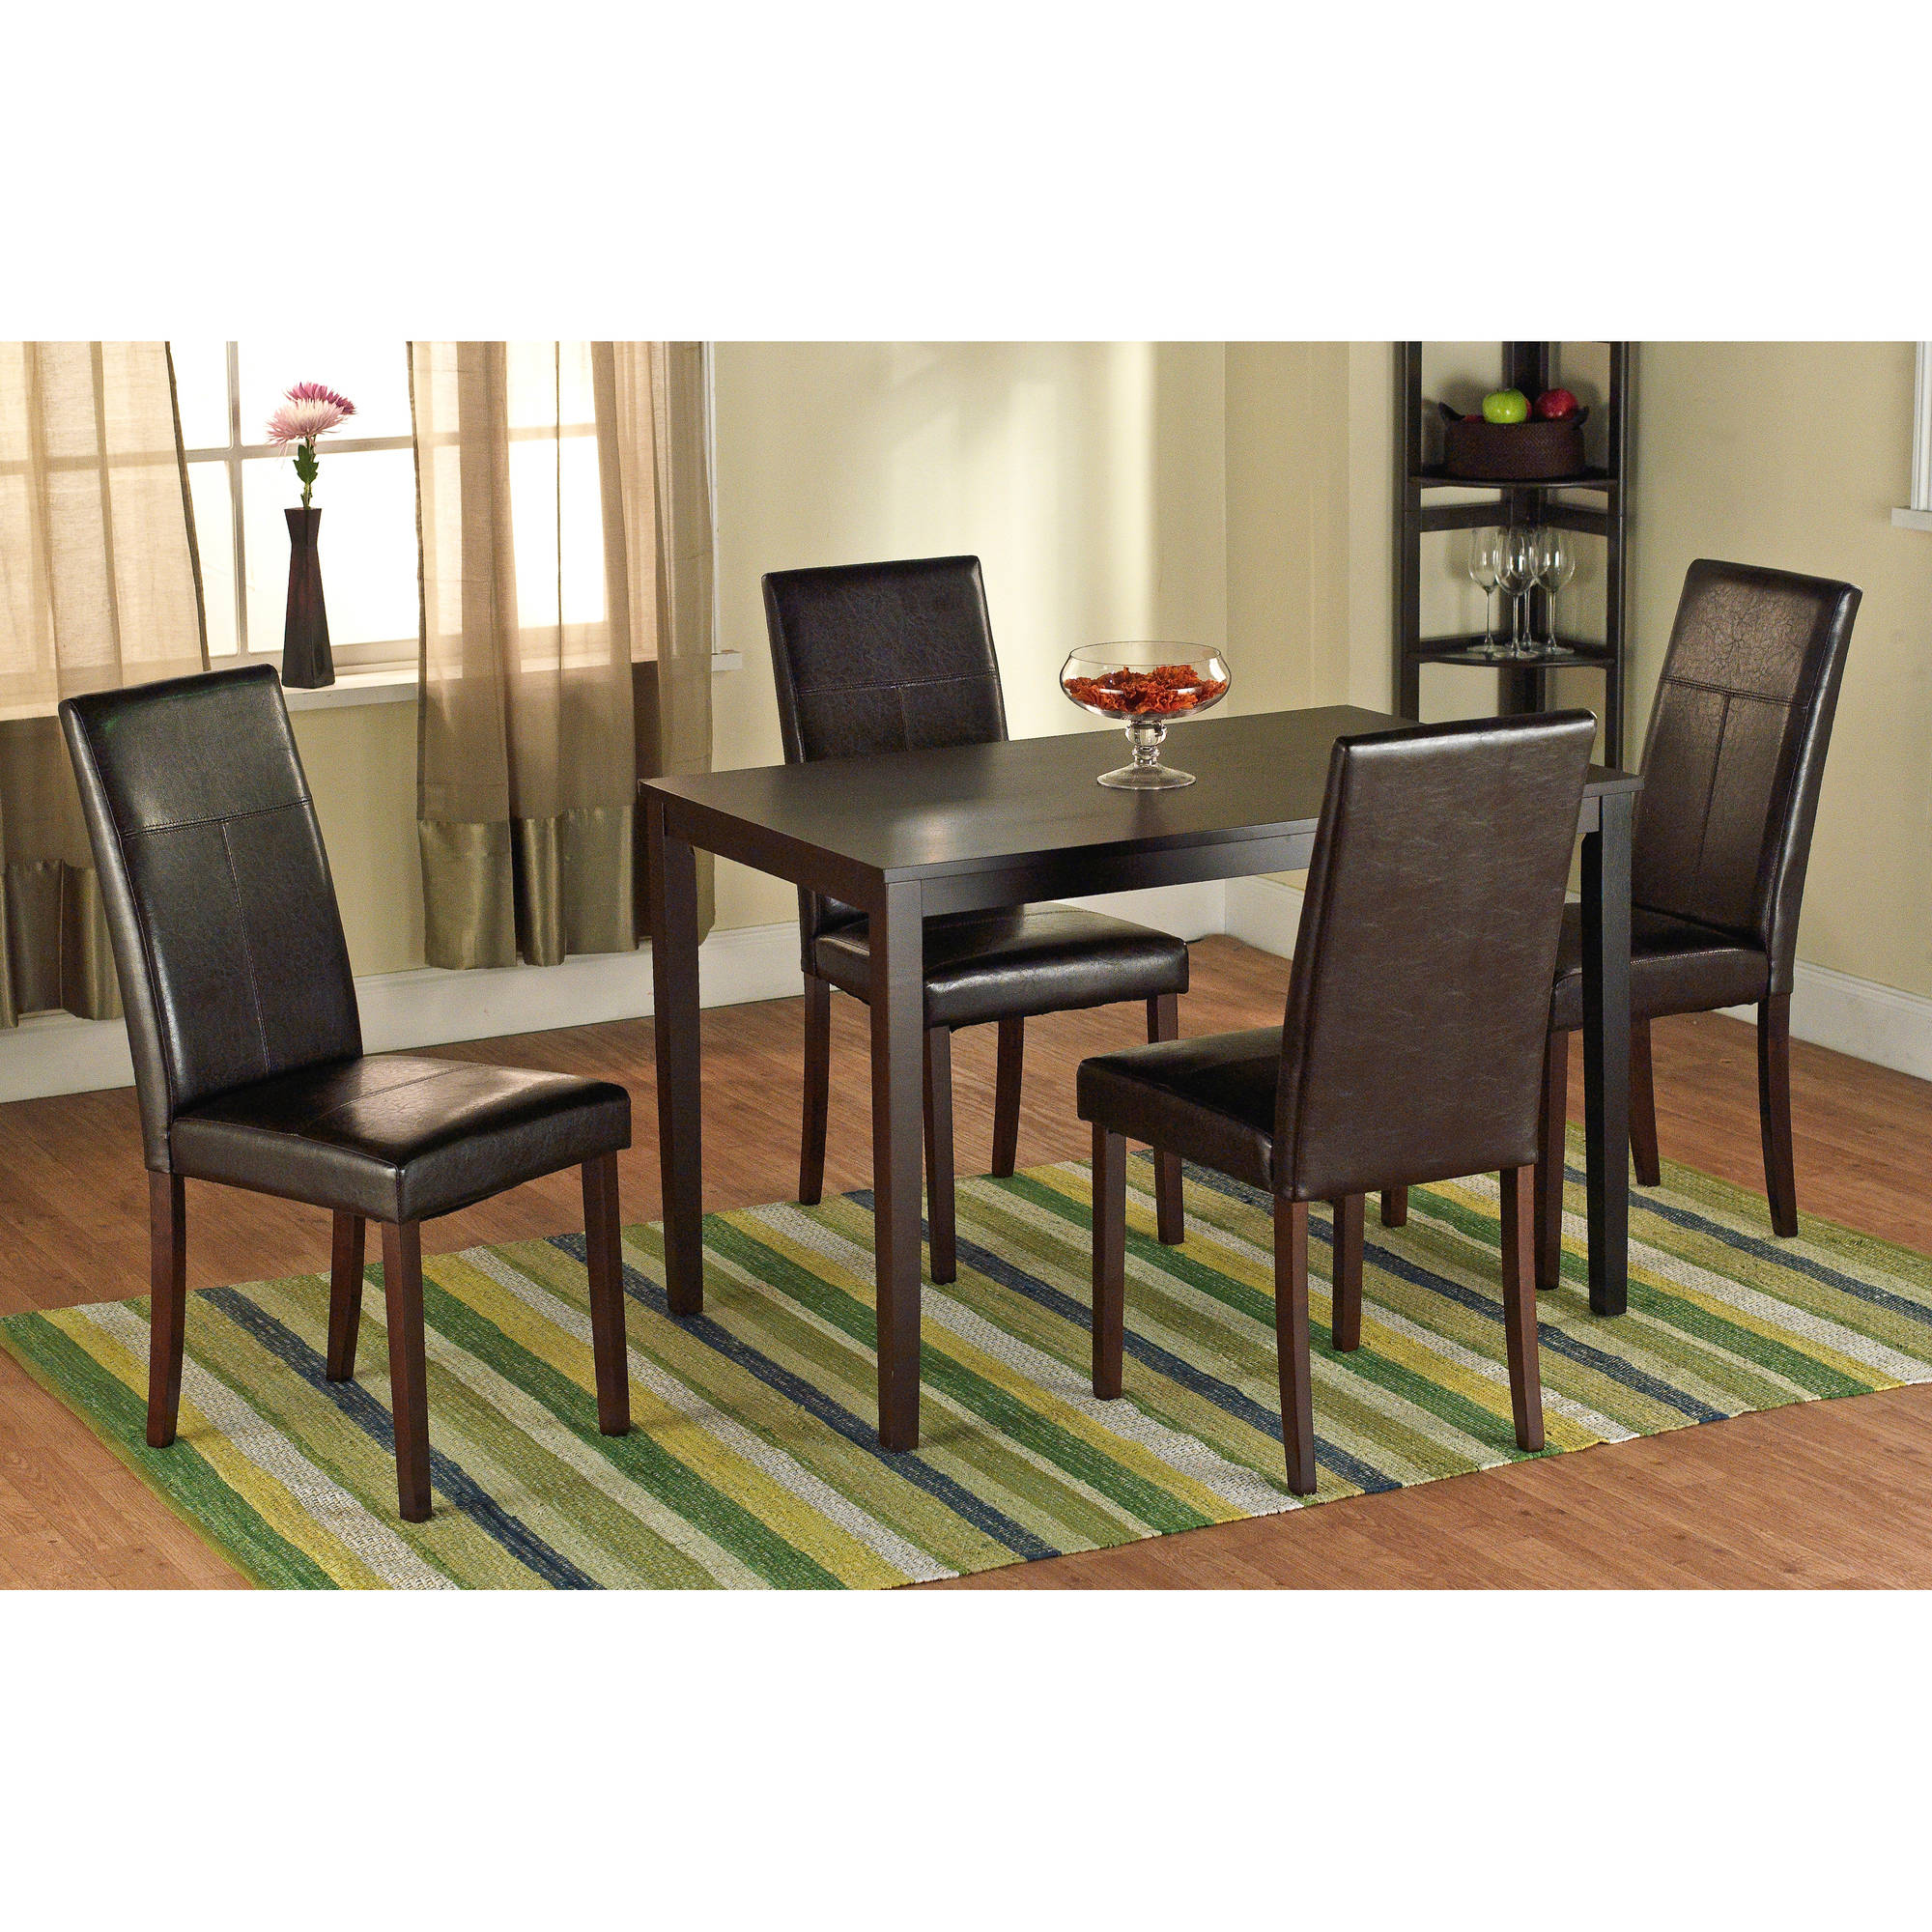 Modern dining room table and chair sets faux leather parson dining chair, set of 2 - walmart.com fyetdrd